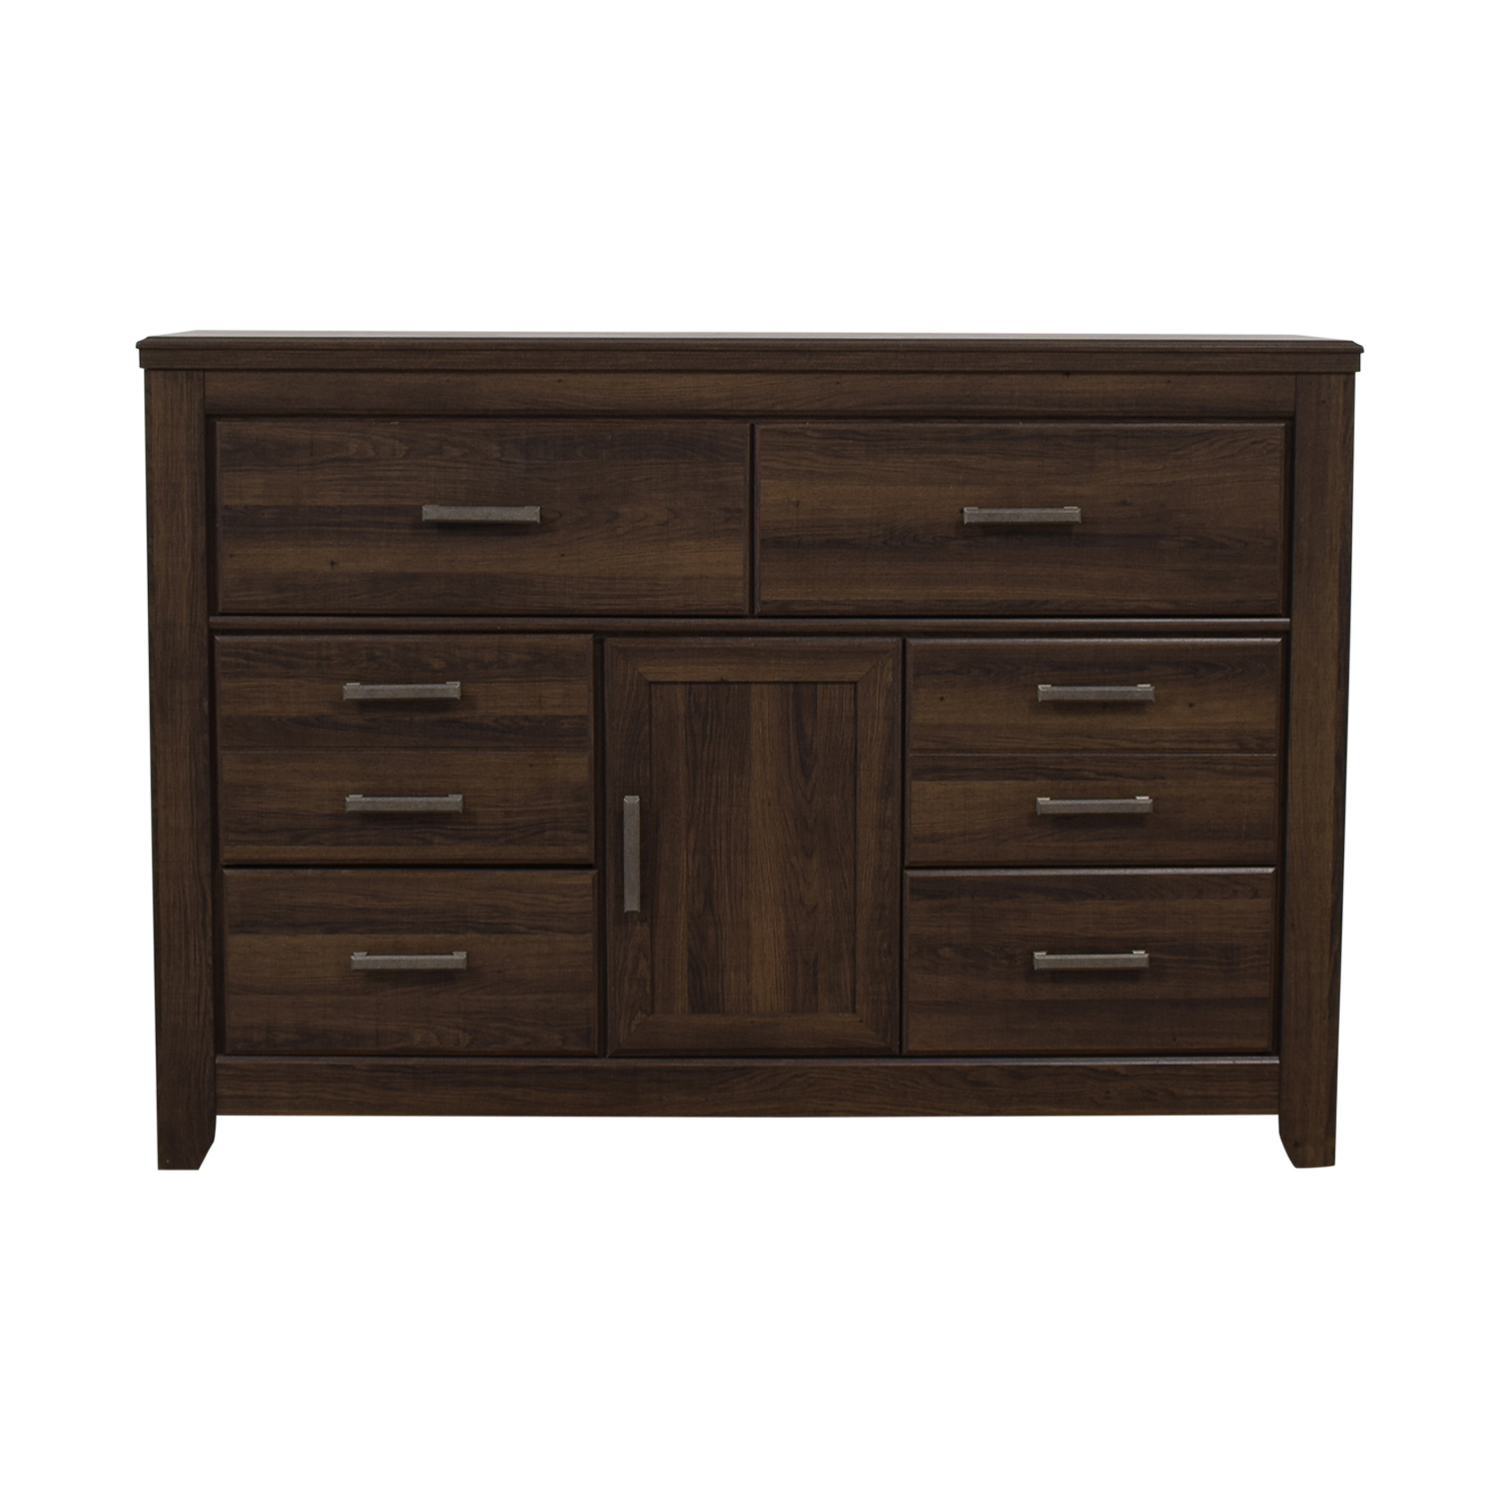 Ashley Furniture Six-Drawer Dresser sale